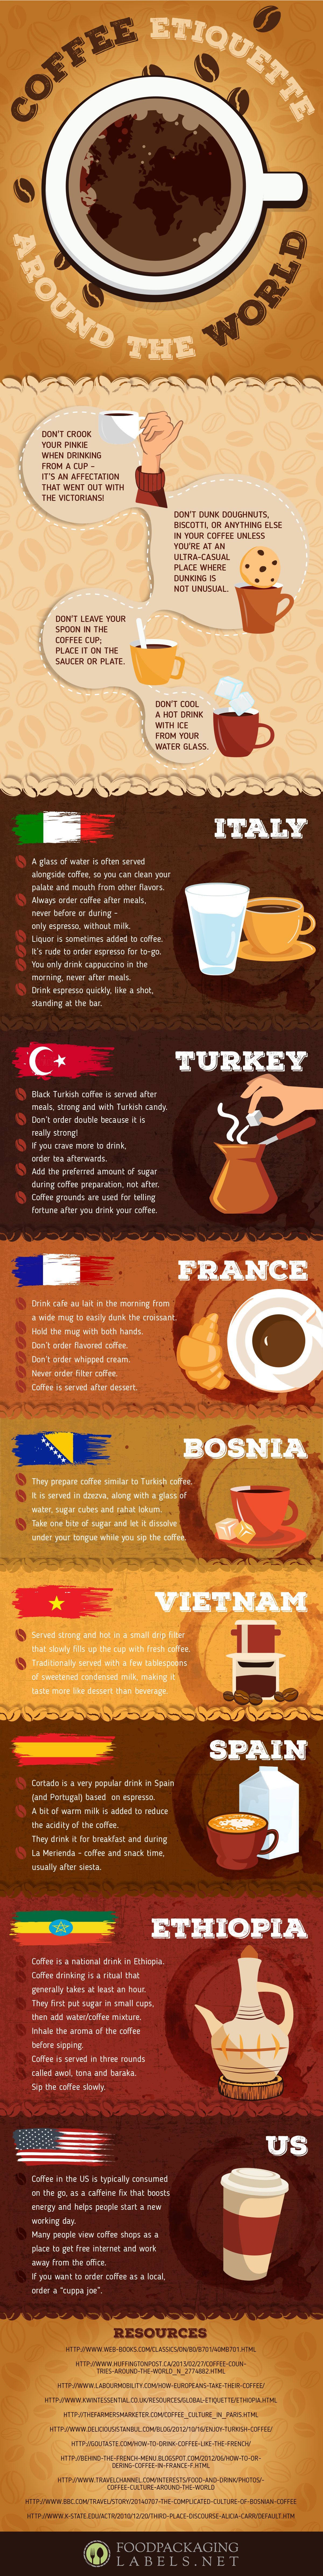 A Quick Guide to Coffee Etiquette Around the World